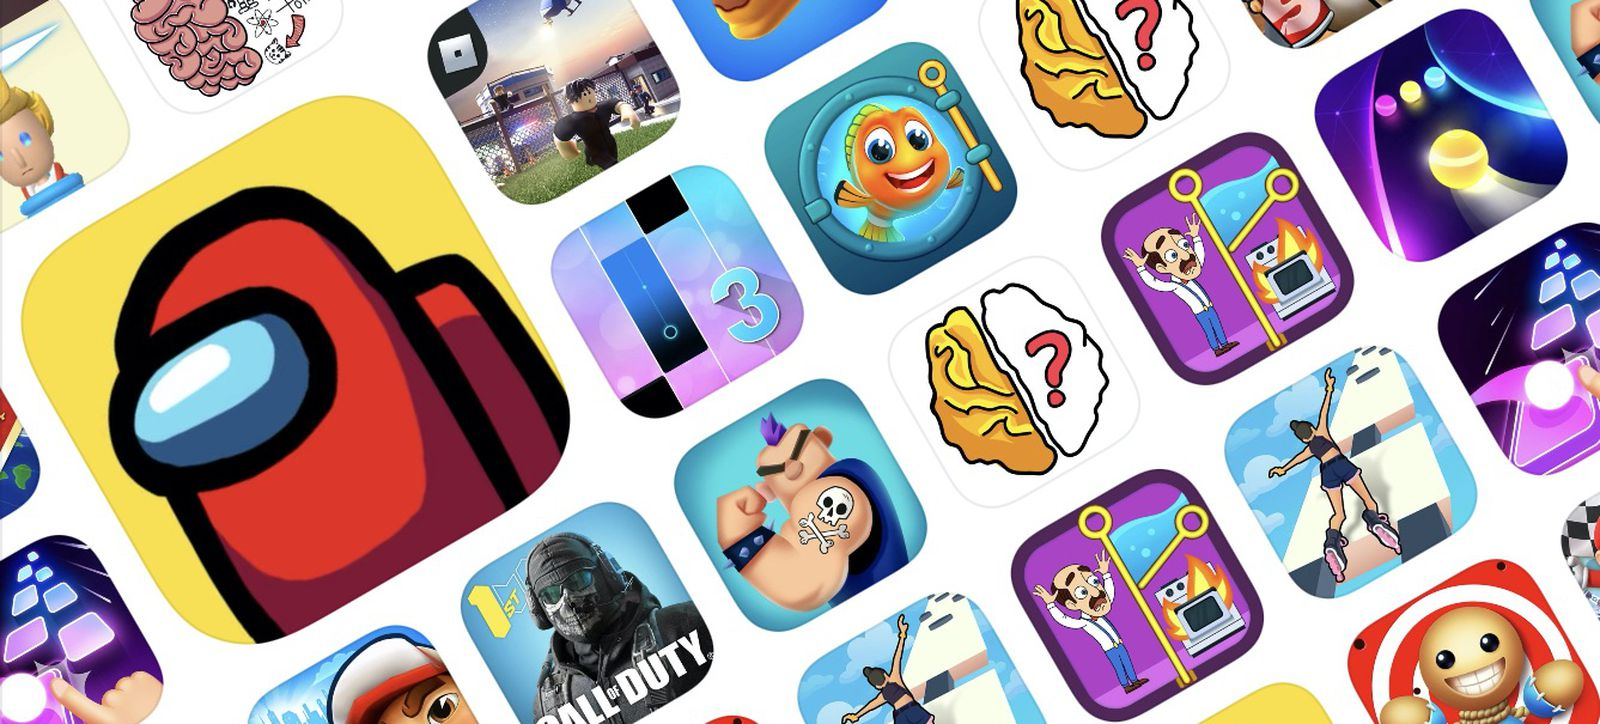 Apple makes really good money on games